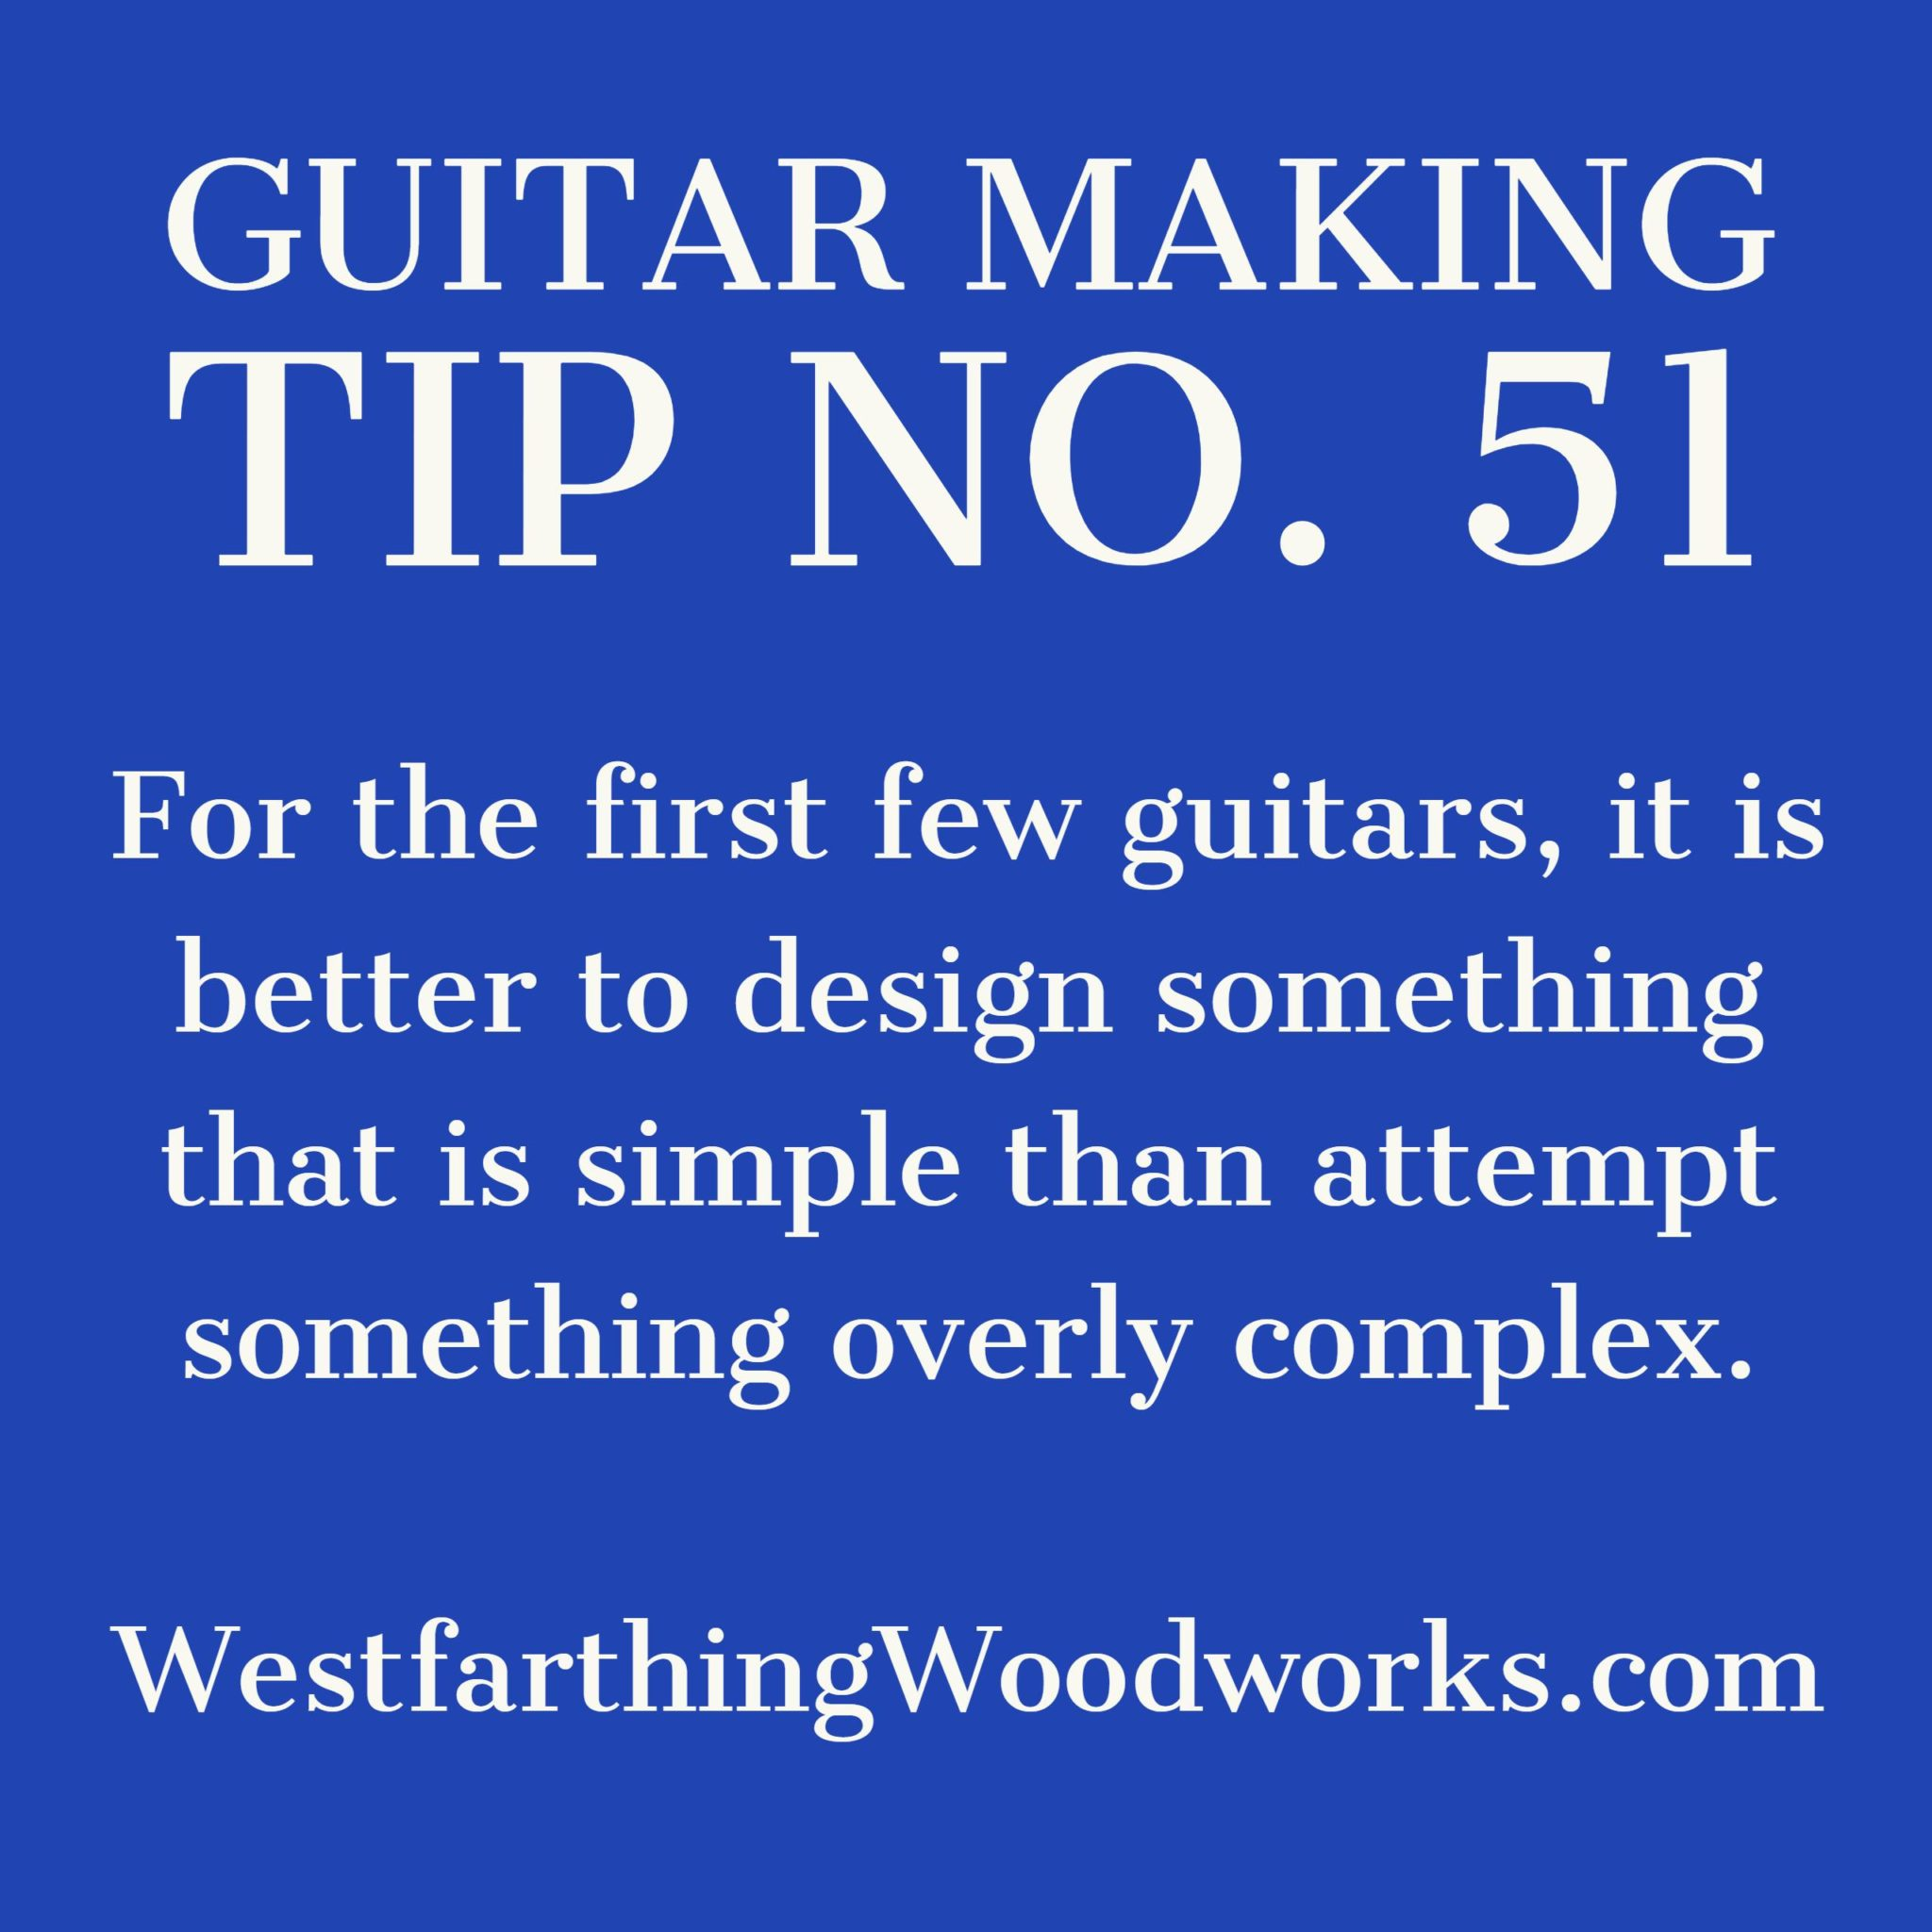 guitar making tip number 51